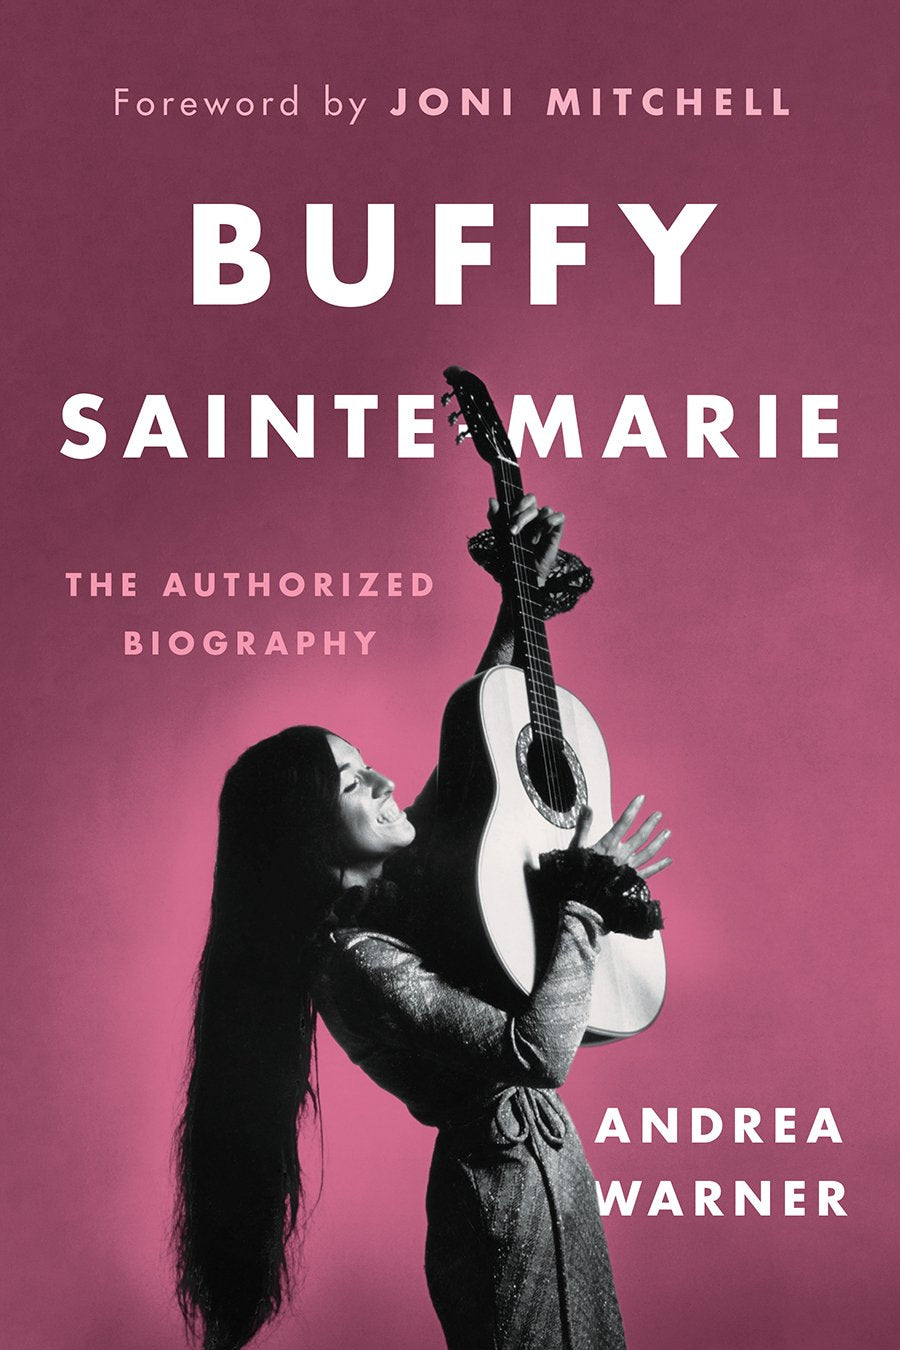 Buffy Sainte-Marie - The Authorized Biography (2018) (Hard Cover) SIGNED